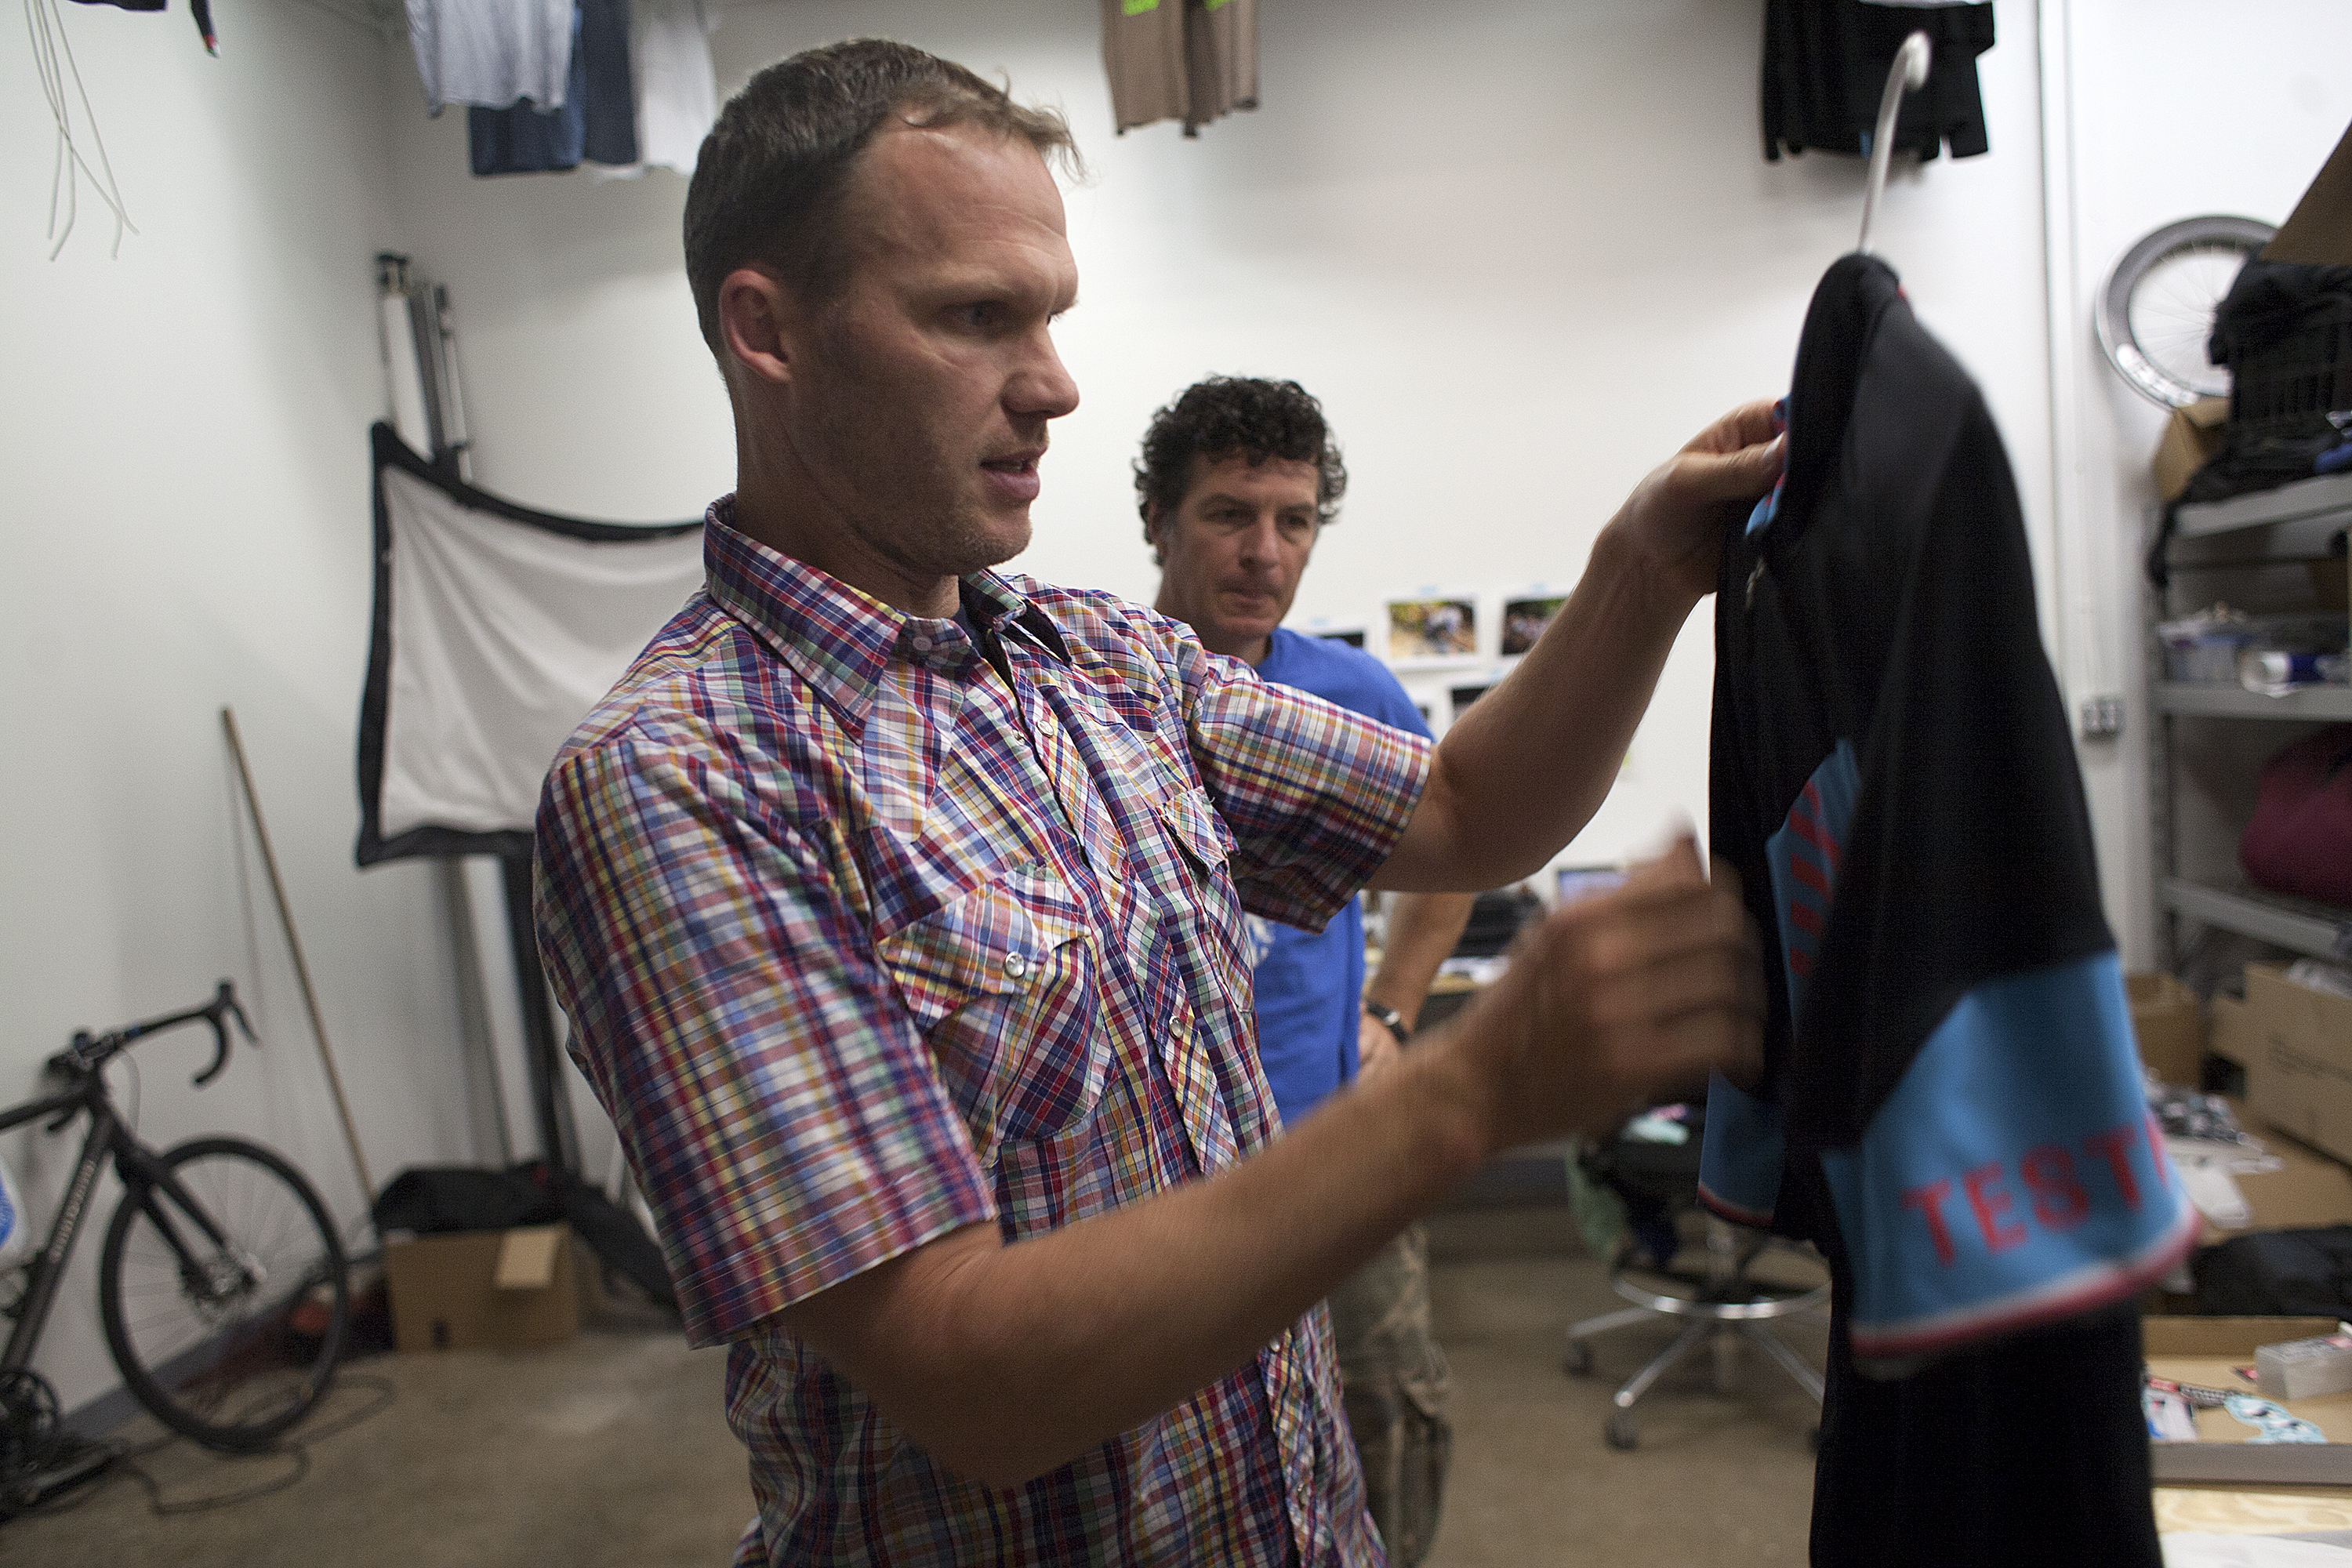 Founder and product designer Paul Krumich, foreground, with team member James Tainter run Donkey Label out of small space in Minneapolis. (Photo:David Pierini)